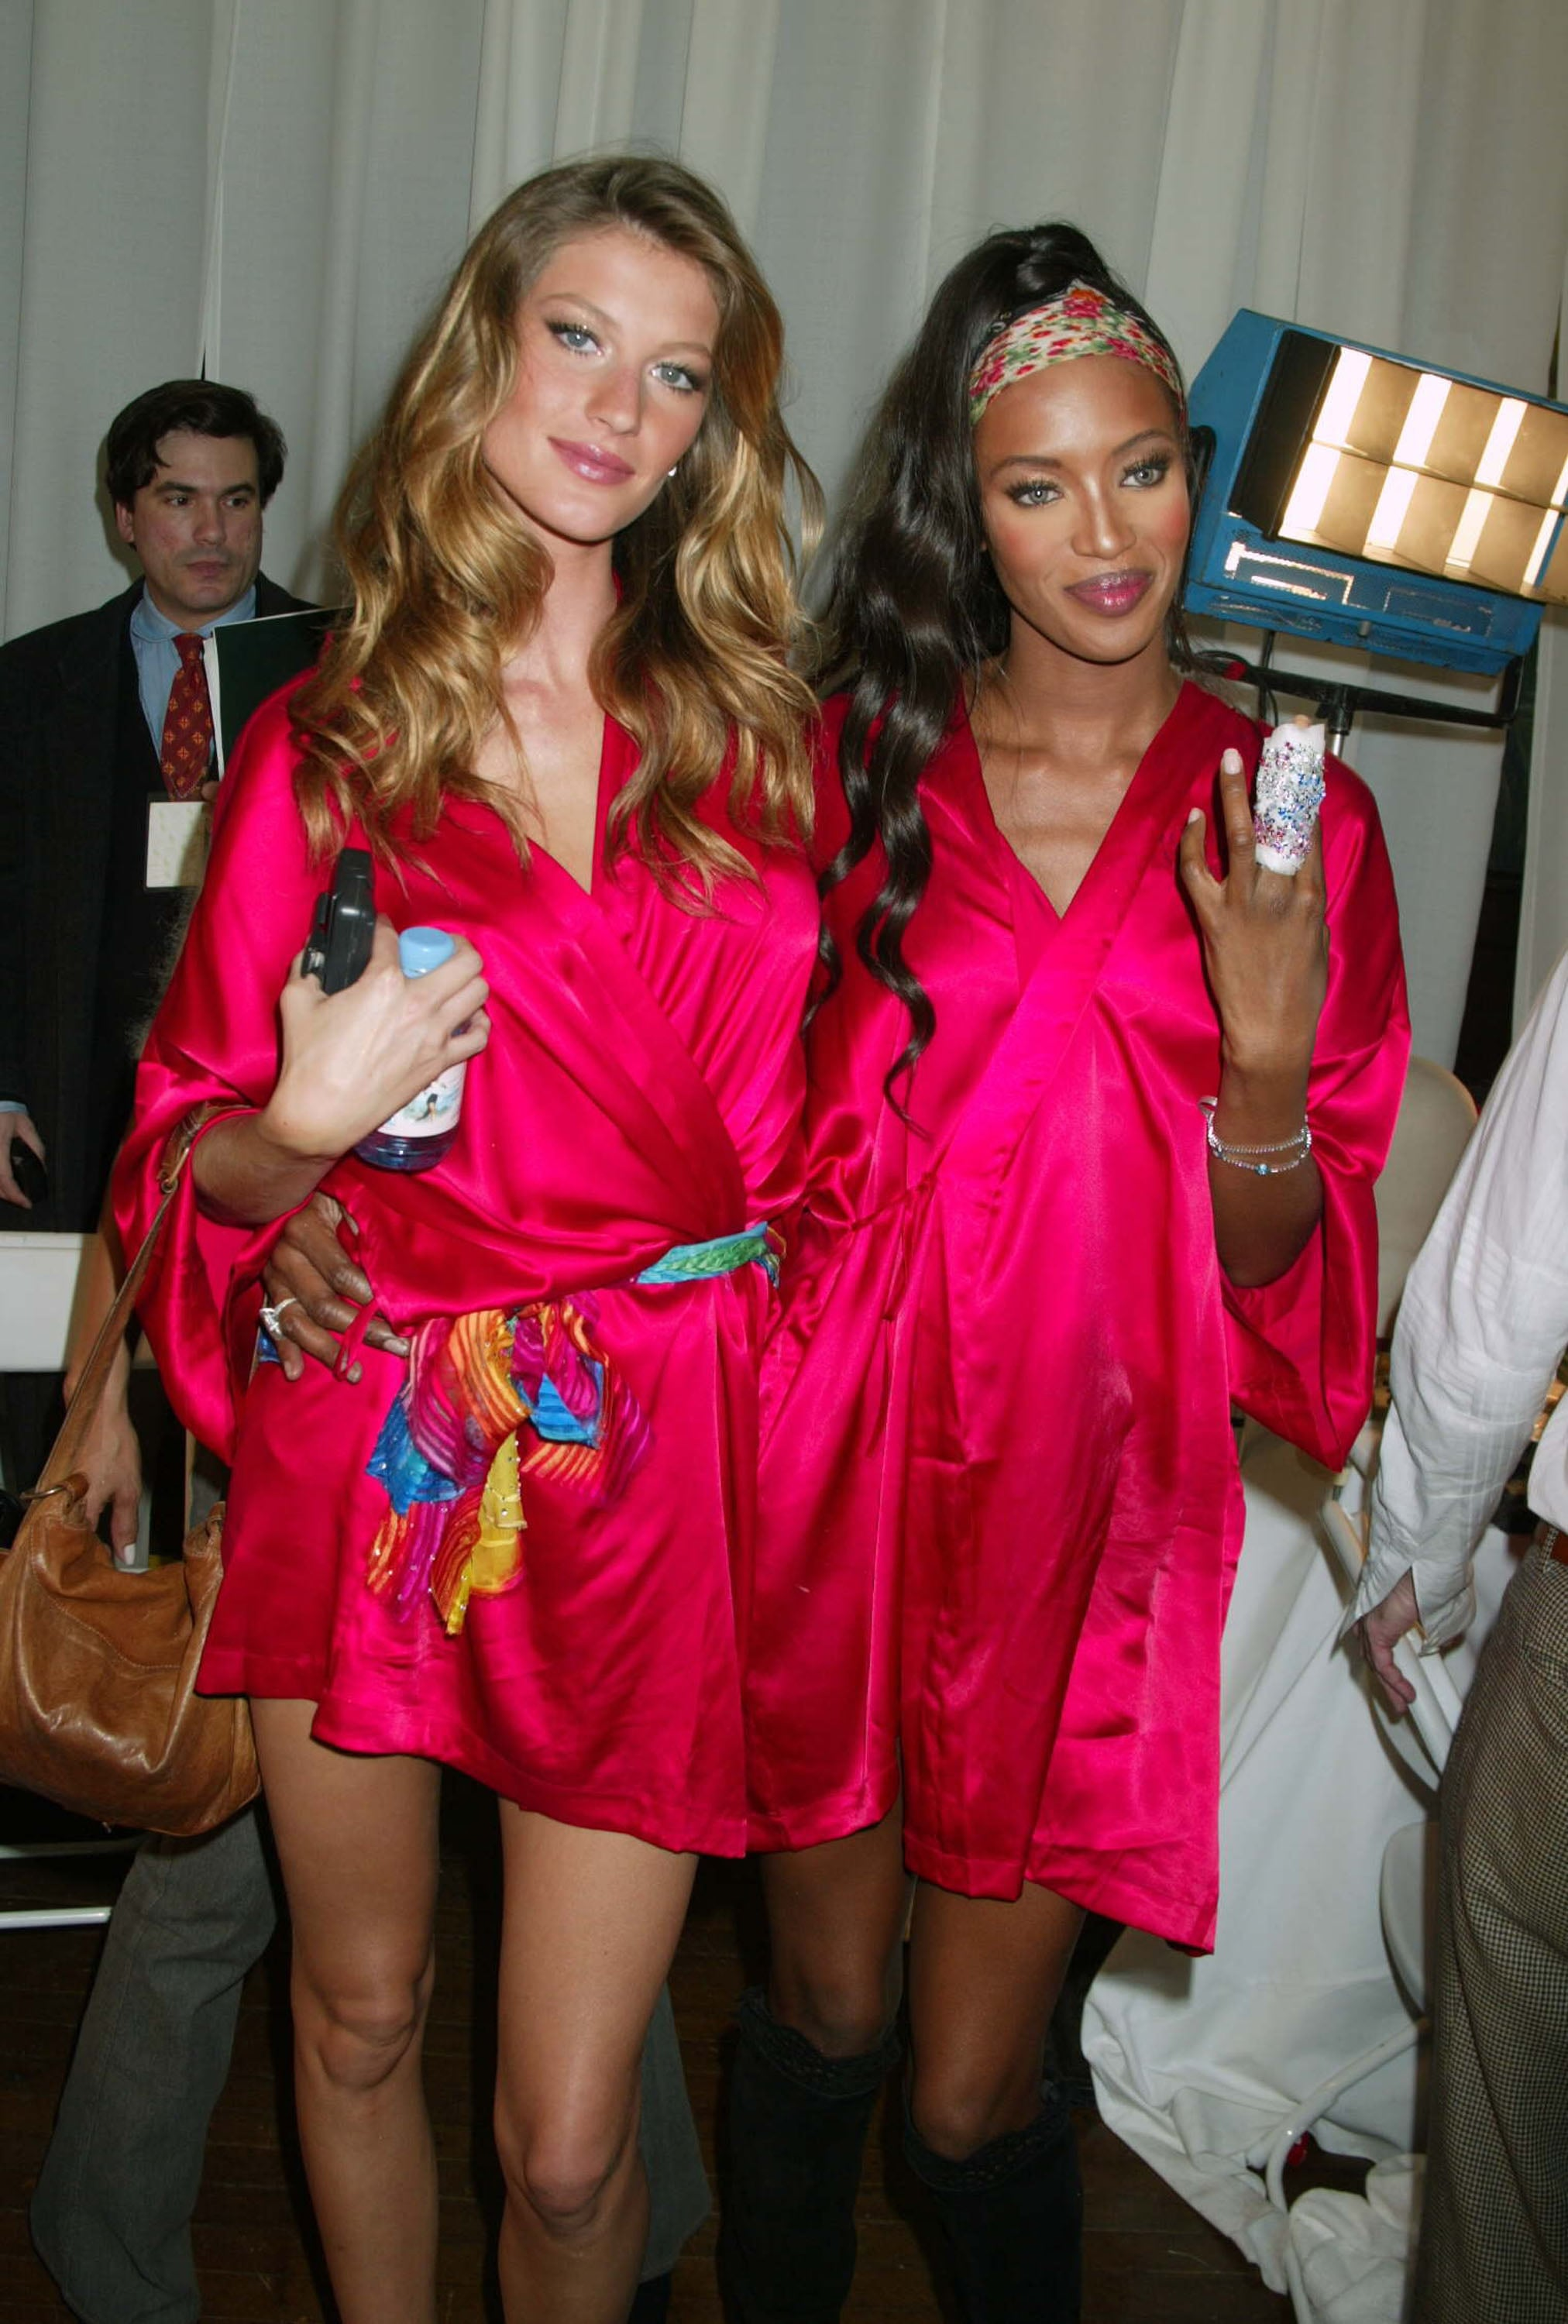 Gisele and Naomi posed backstage together in 2003.